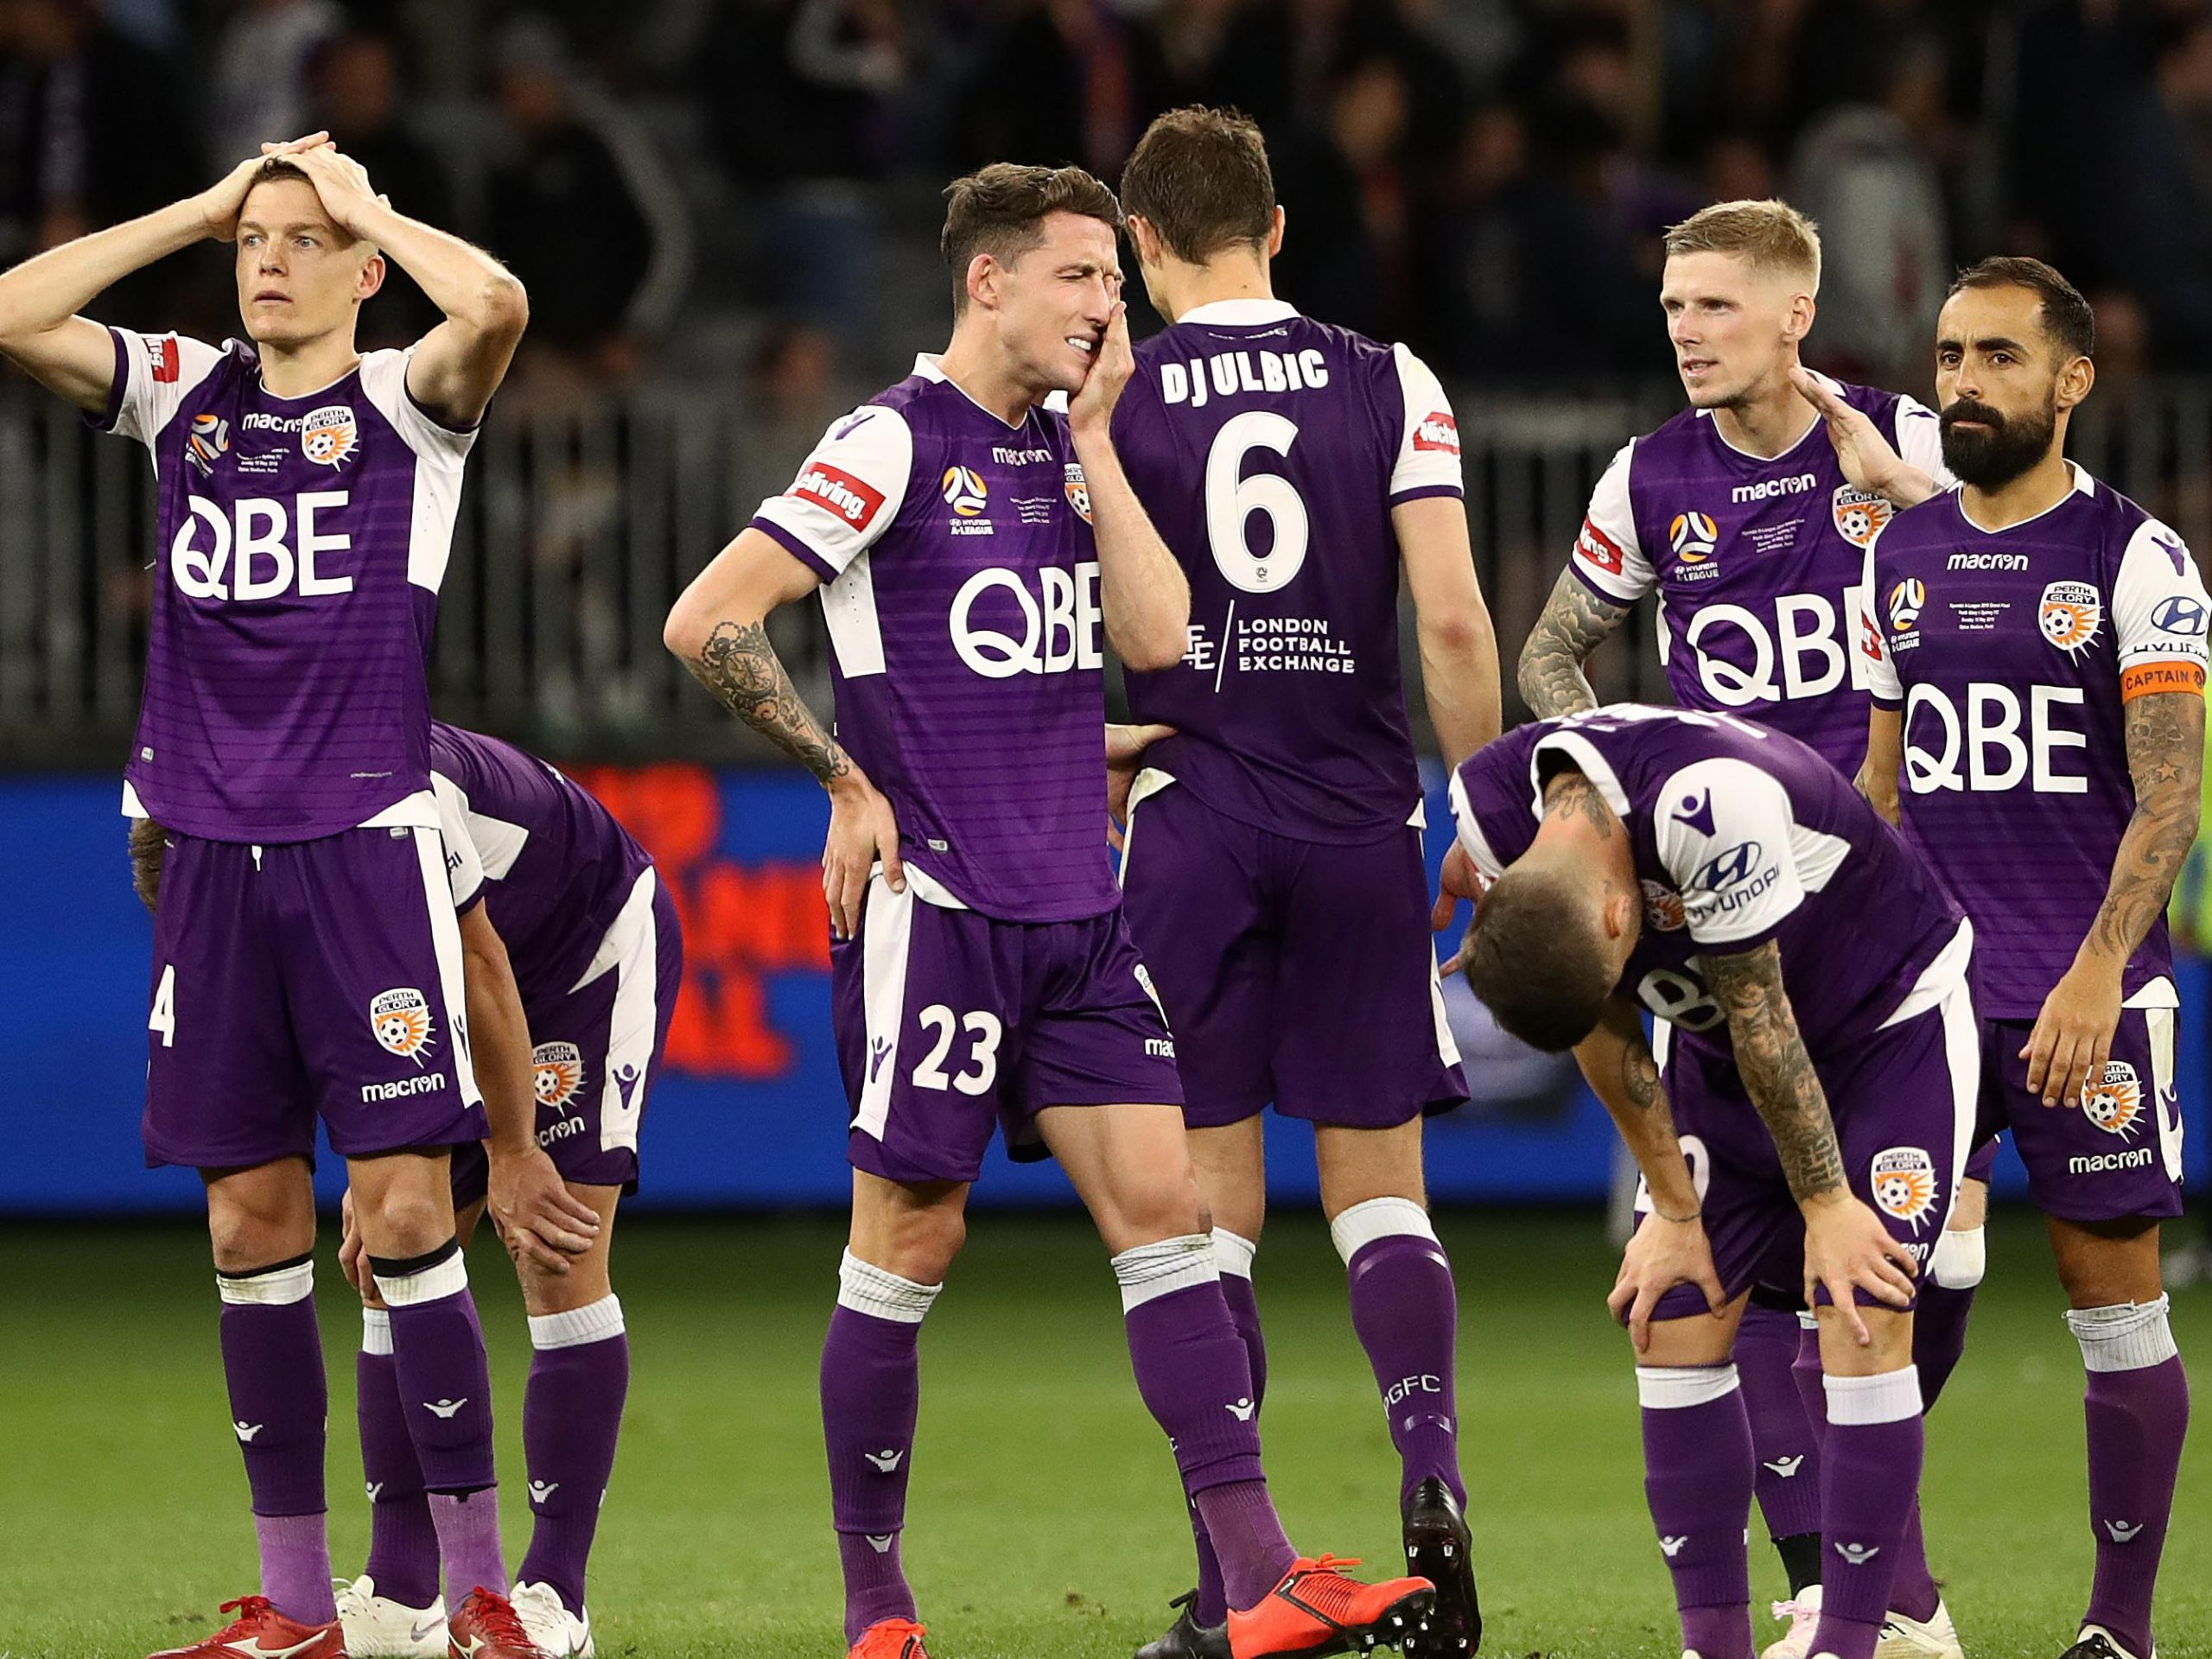 soi-keo-perth-glory-vs-western-united-fc-vao-17h30-ngay-23-3-2020-2